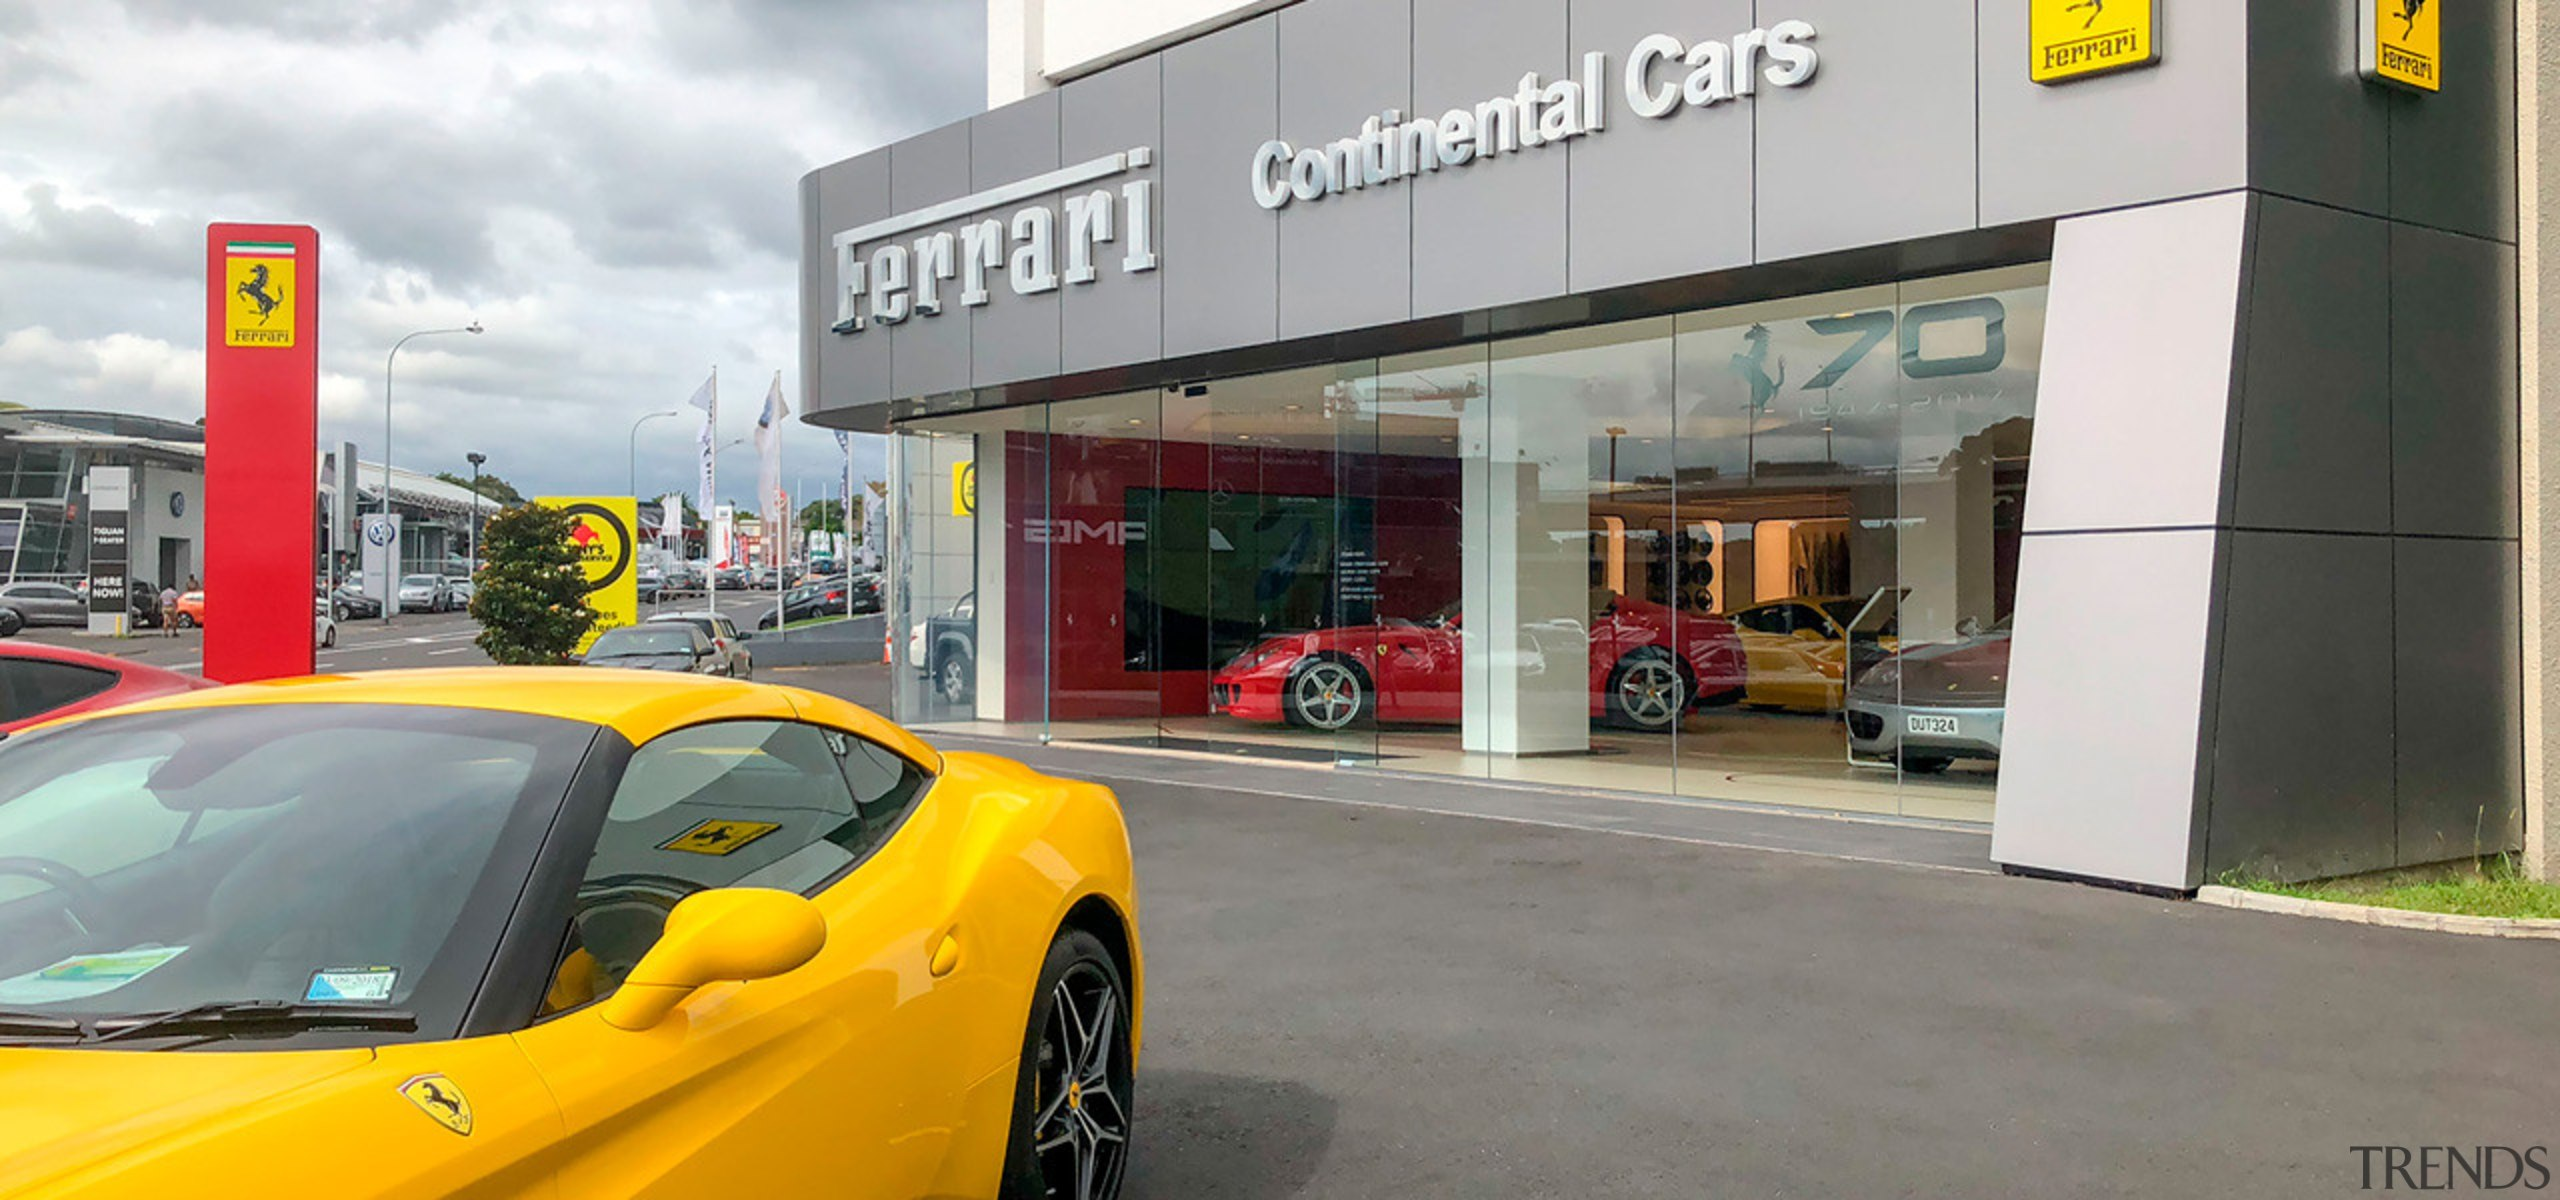 Ferrari Showroom 3 - automotive design | automotive automotive design, automotive wheel system, car, coupé, land vehicle, luxury vehicle, performance car, sports car, supercar, vehicle, wheel, yellow, gray